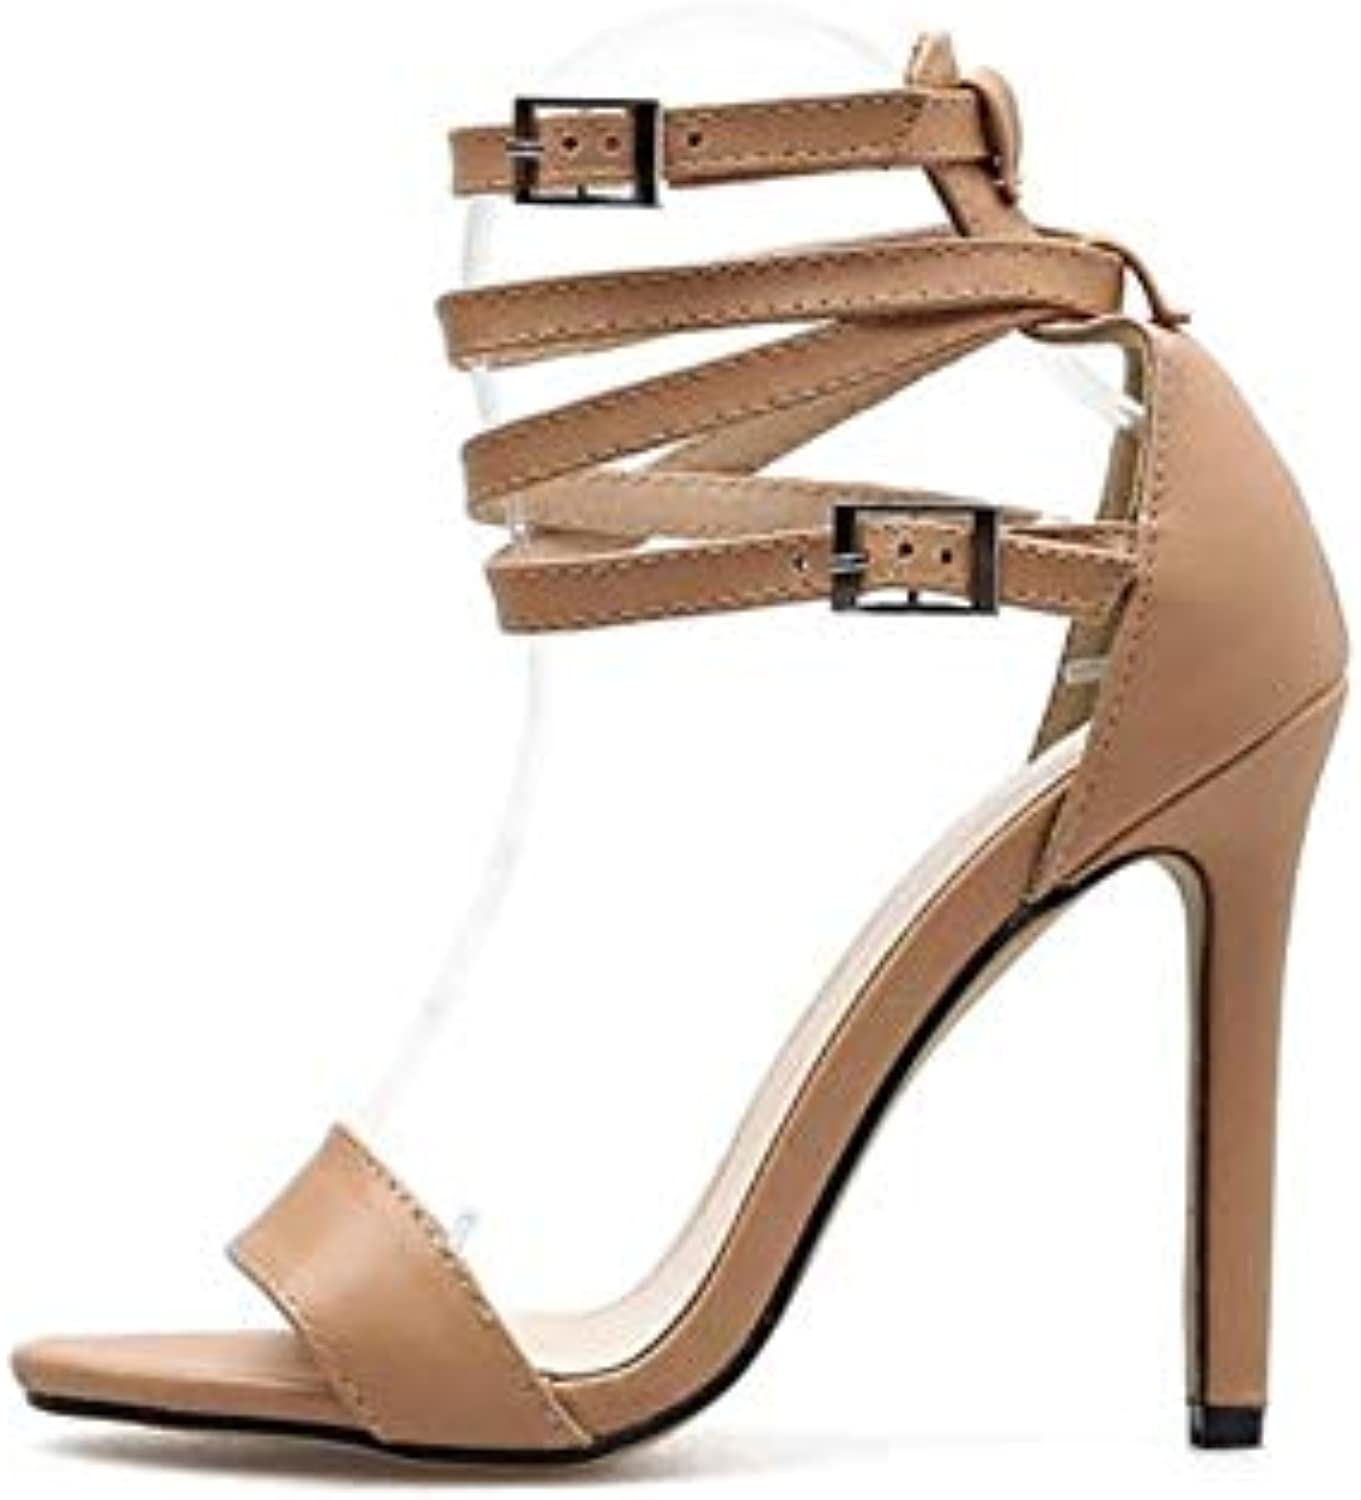 JQfashion Women's High-Heeled shoes Fishmouth High-Heeled Sandals Pointed Thin-Heeled Roman shoes